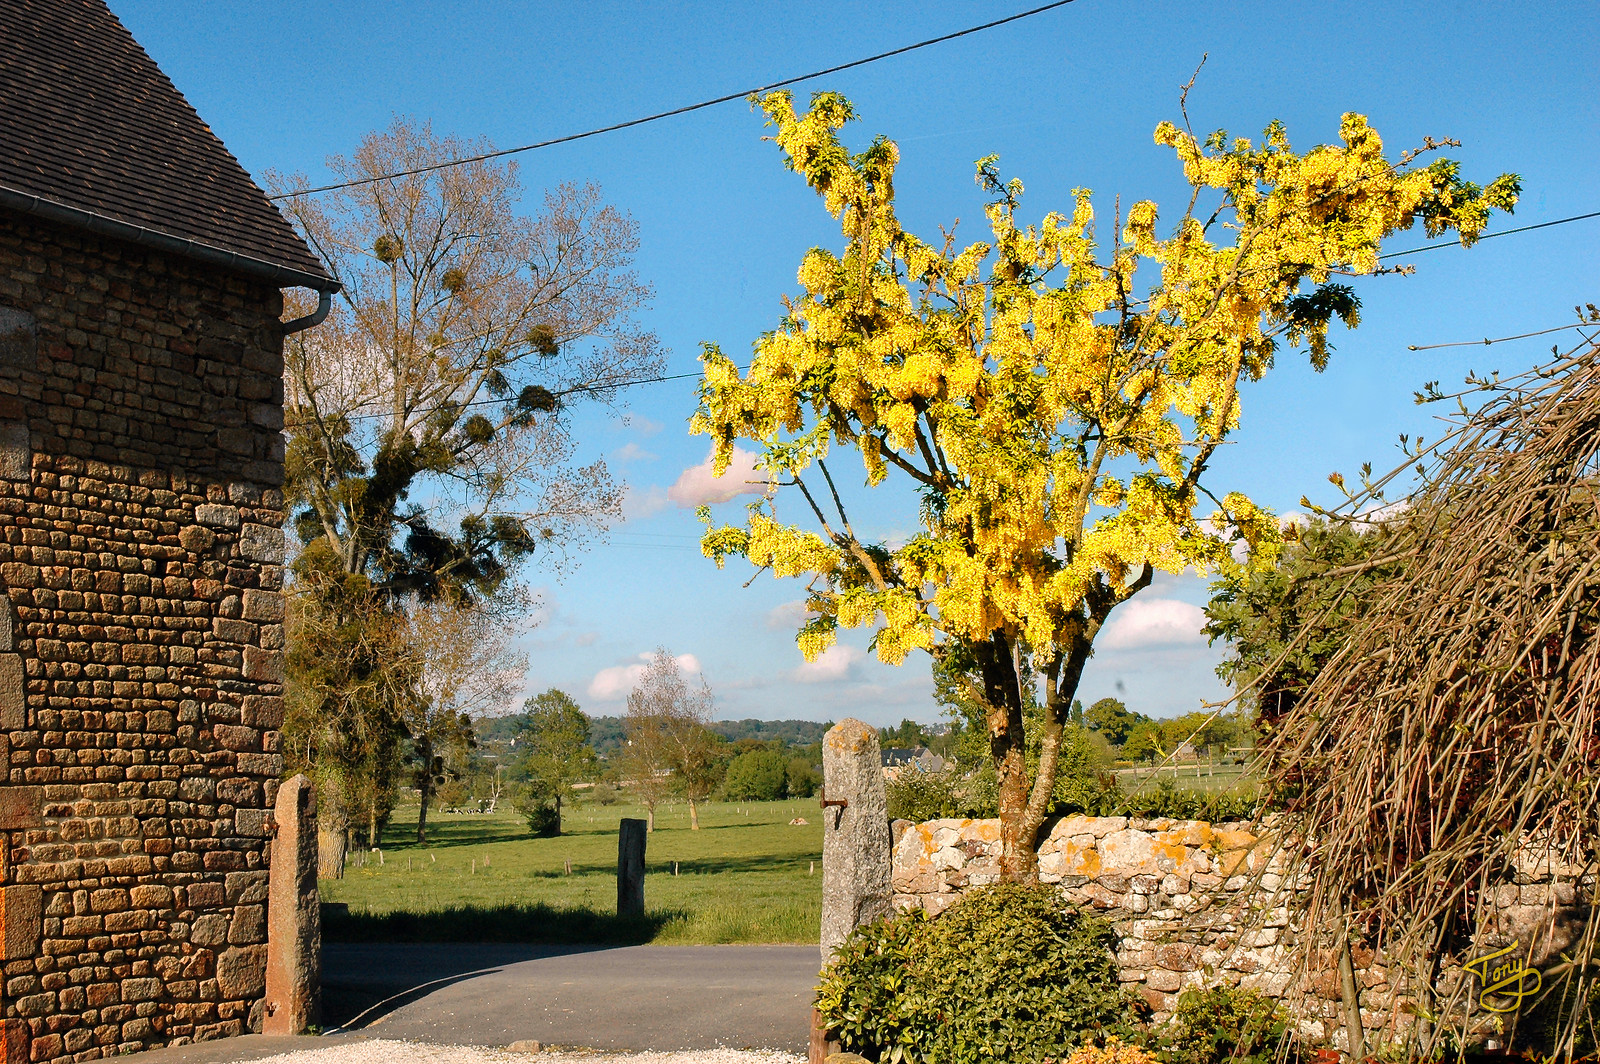 """Le-Val-Saint-Père - 2009 - La Maraîcherie, our Chambres-d'Hôtes -  Golden Chain Tree - I had a hard time trying to convey photographically the radiant gold of this tree.  This picture only hints at it. <a title=""""godaddy counter"""" href=""""http://statcounter.com/godaddy_website_tonight/"""" target=""""_blank""""><img style=""""display:none;"""" src=""""http://c.statcounter.com/2514080/0/73d54fdc/0/"""" alt=""""godaddy counter""""></a>"""